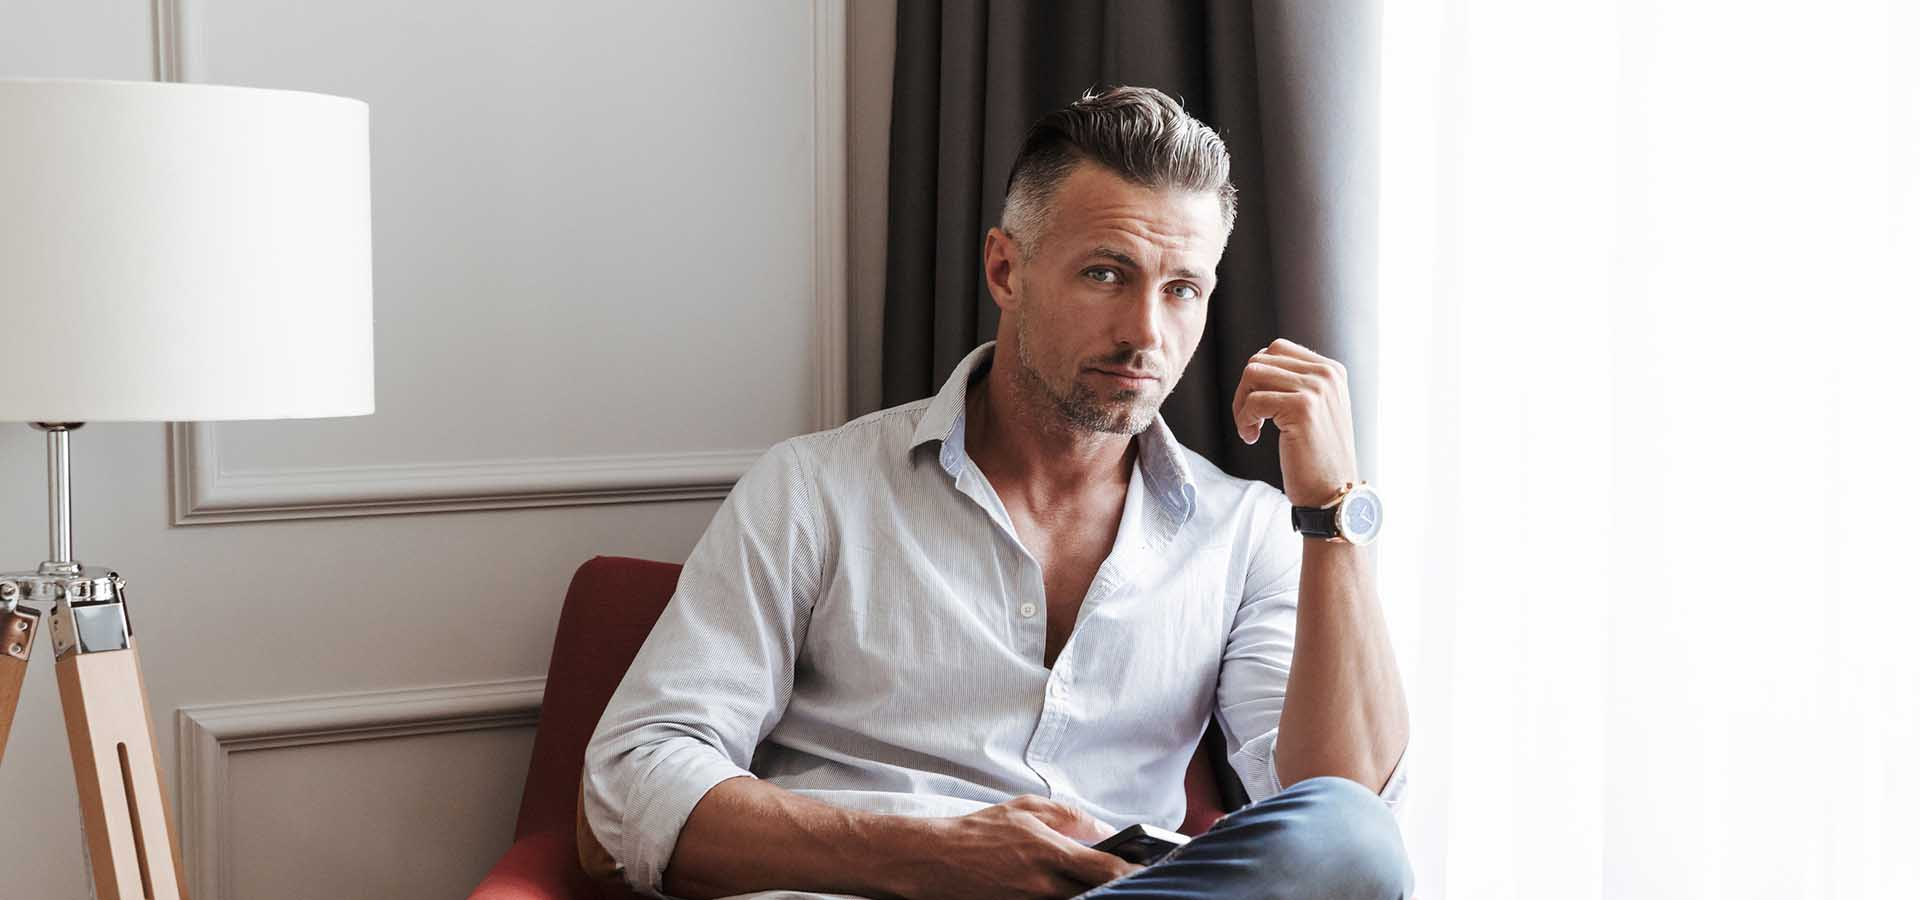 Photo of caucasian handsome man 30s in casual wear using smartphone while sitting in armchair in living room or hotel apartment.